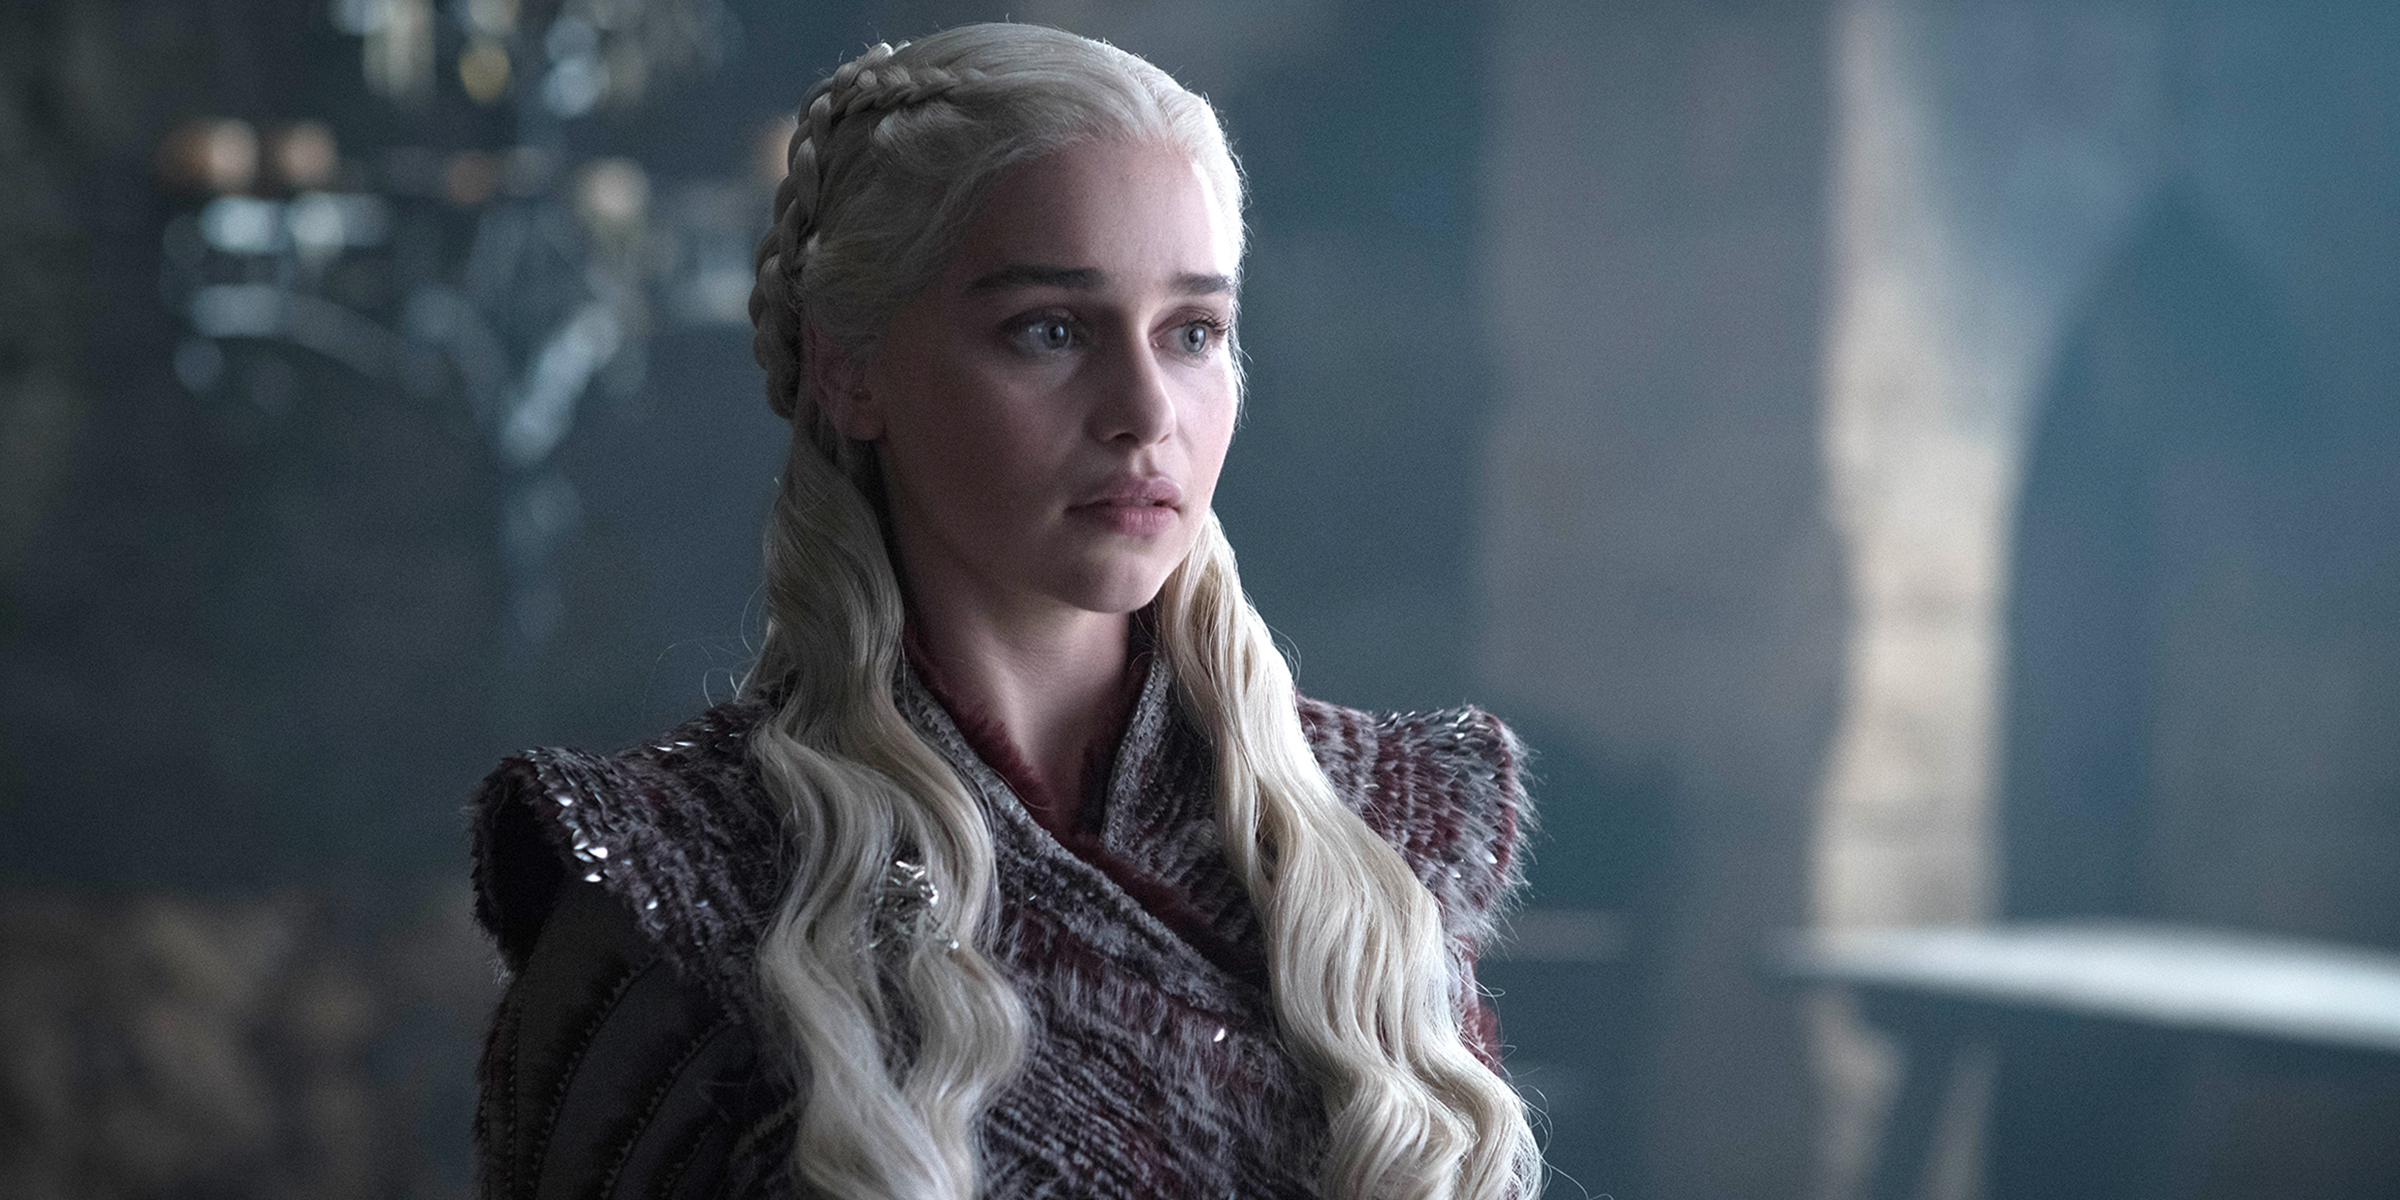 Hbo Admits Game Of Thrones Starbucks Cup Gaffe Wipes It